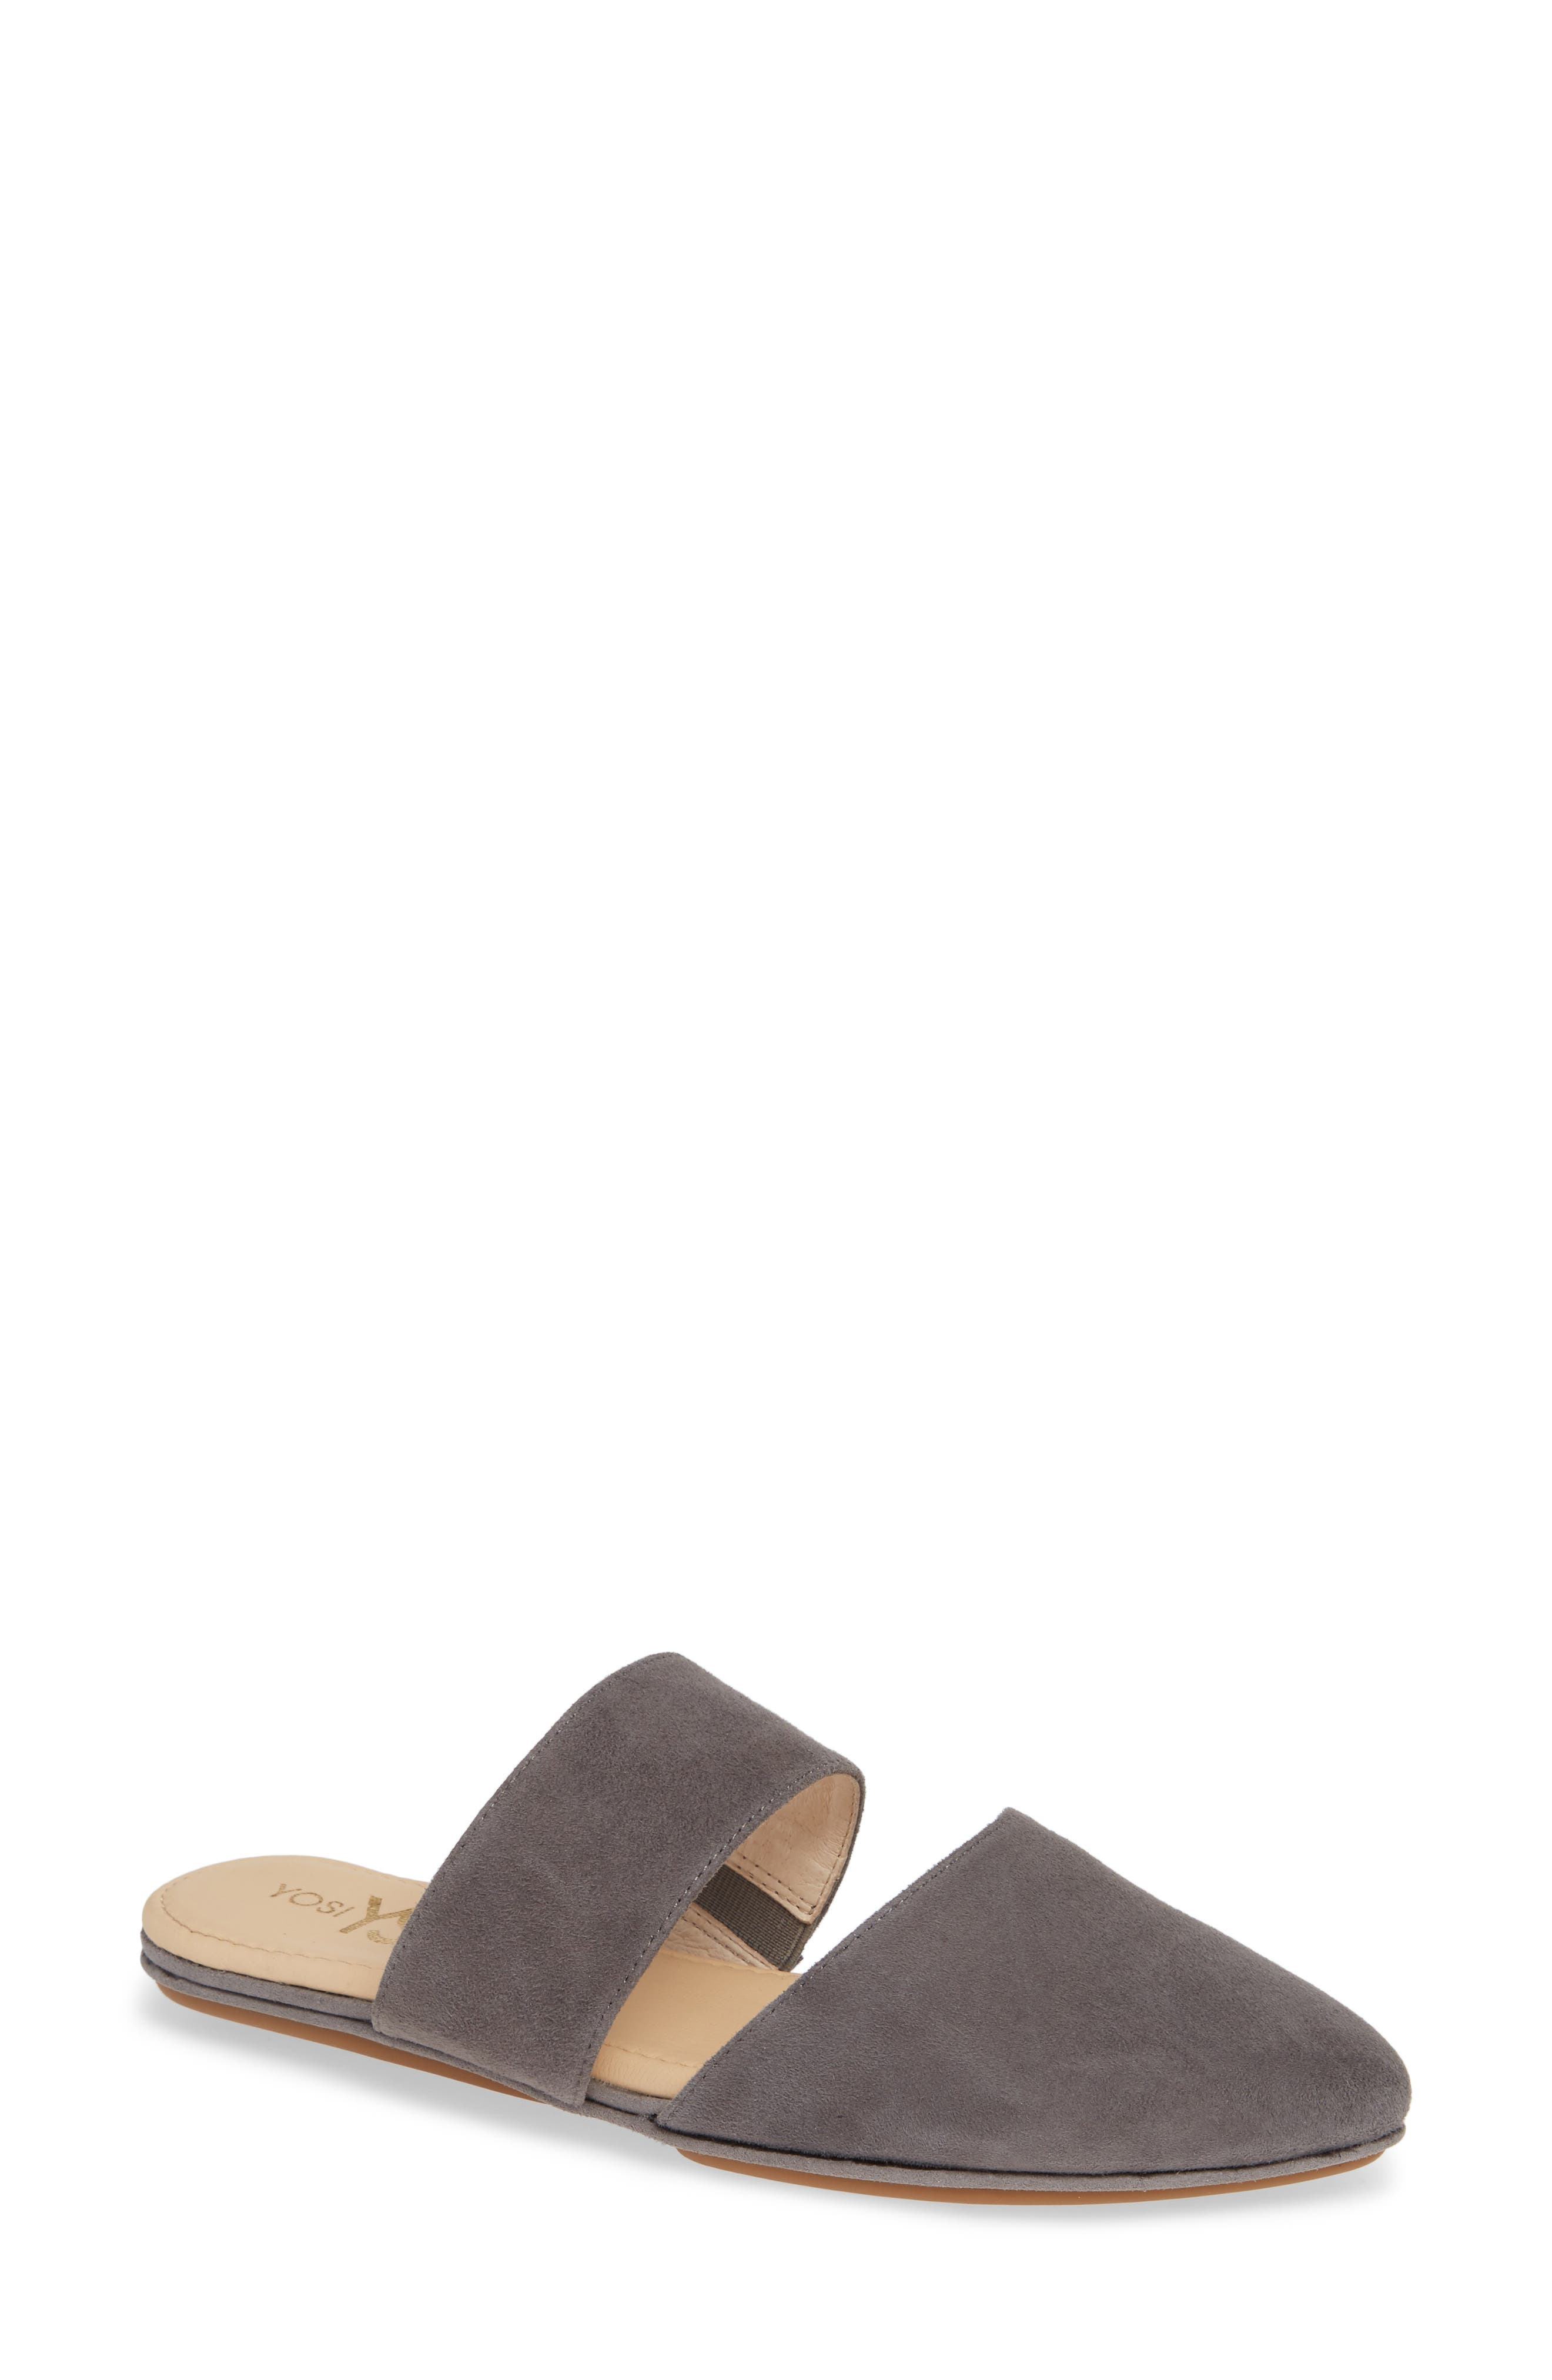 Vicky Mule,                             Main thumbnail 1, color,                             DARK GREY SUEDE